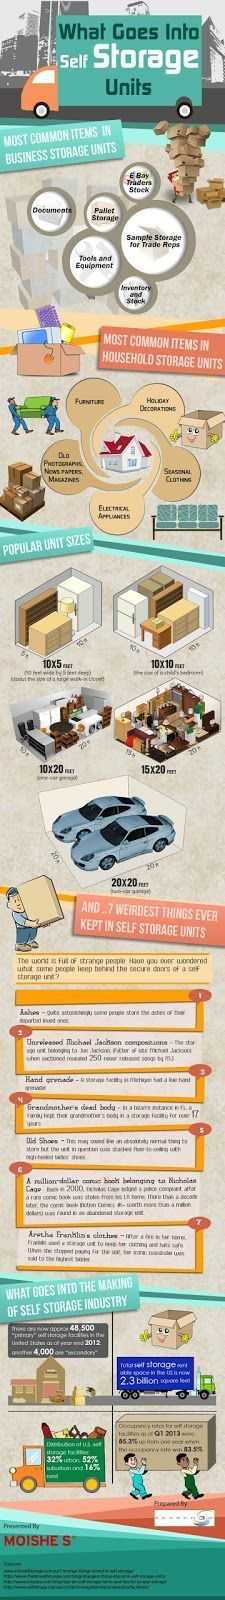 Common Items for Business and Household Storage Units - This colorful infographic provides useful information about common items kept in #storage_units, popular sizes, fun facts about strange objects found in units and what goes into the making of #storage_facility.